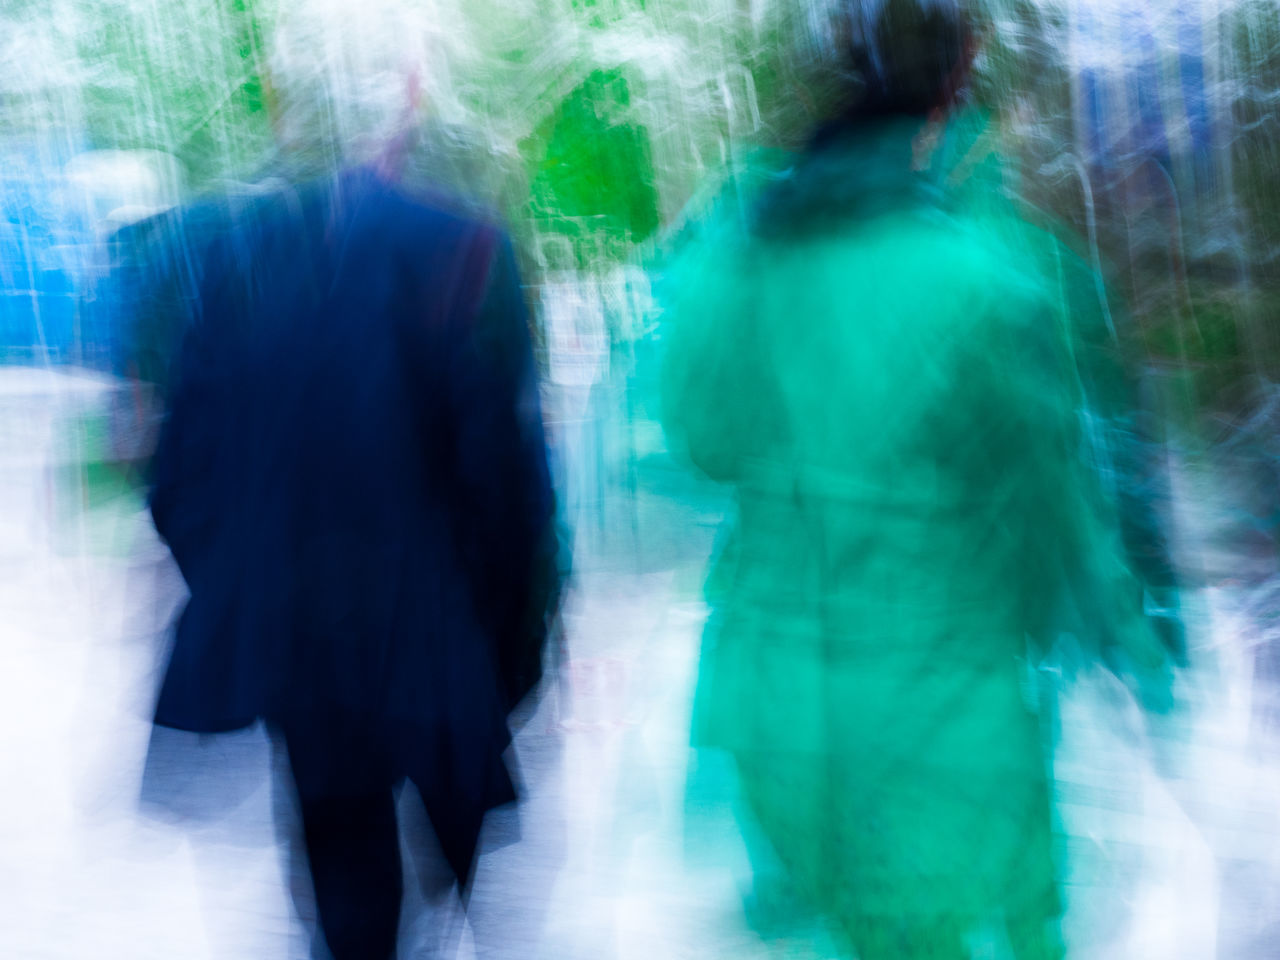 Abstract Adult Blue And Green Blurred Blurred Motion Blurred Movement City City Life Day Experimental Experimental Photography EyeEmNewHere France Lifestyles Montmartre Motion Paris Paris, France  People Real People Unrecognizable Person Walking